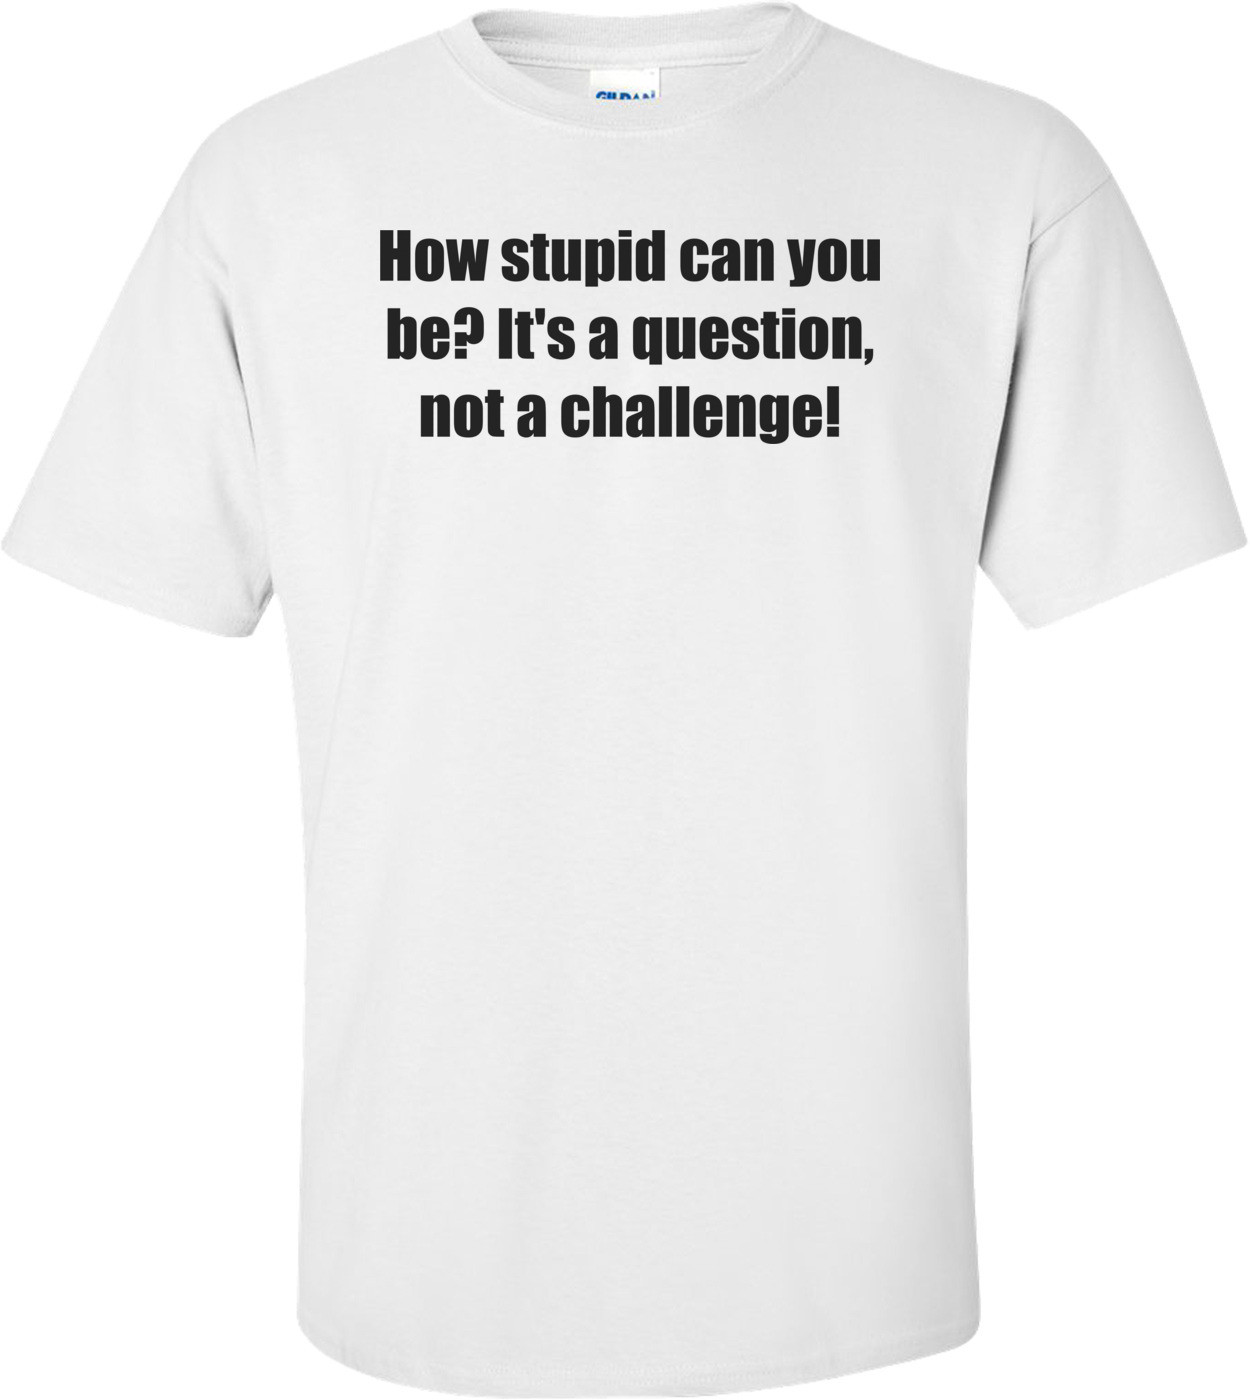 How stupid can you be? It's a question, not a challenge! Shirt